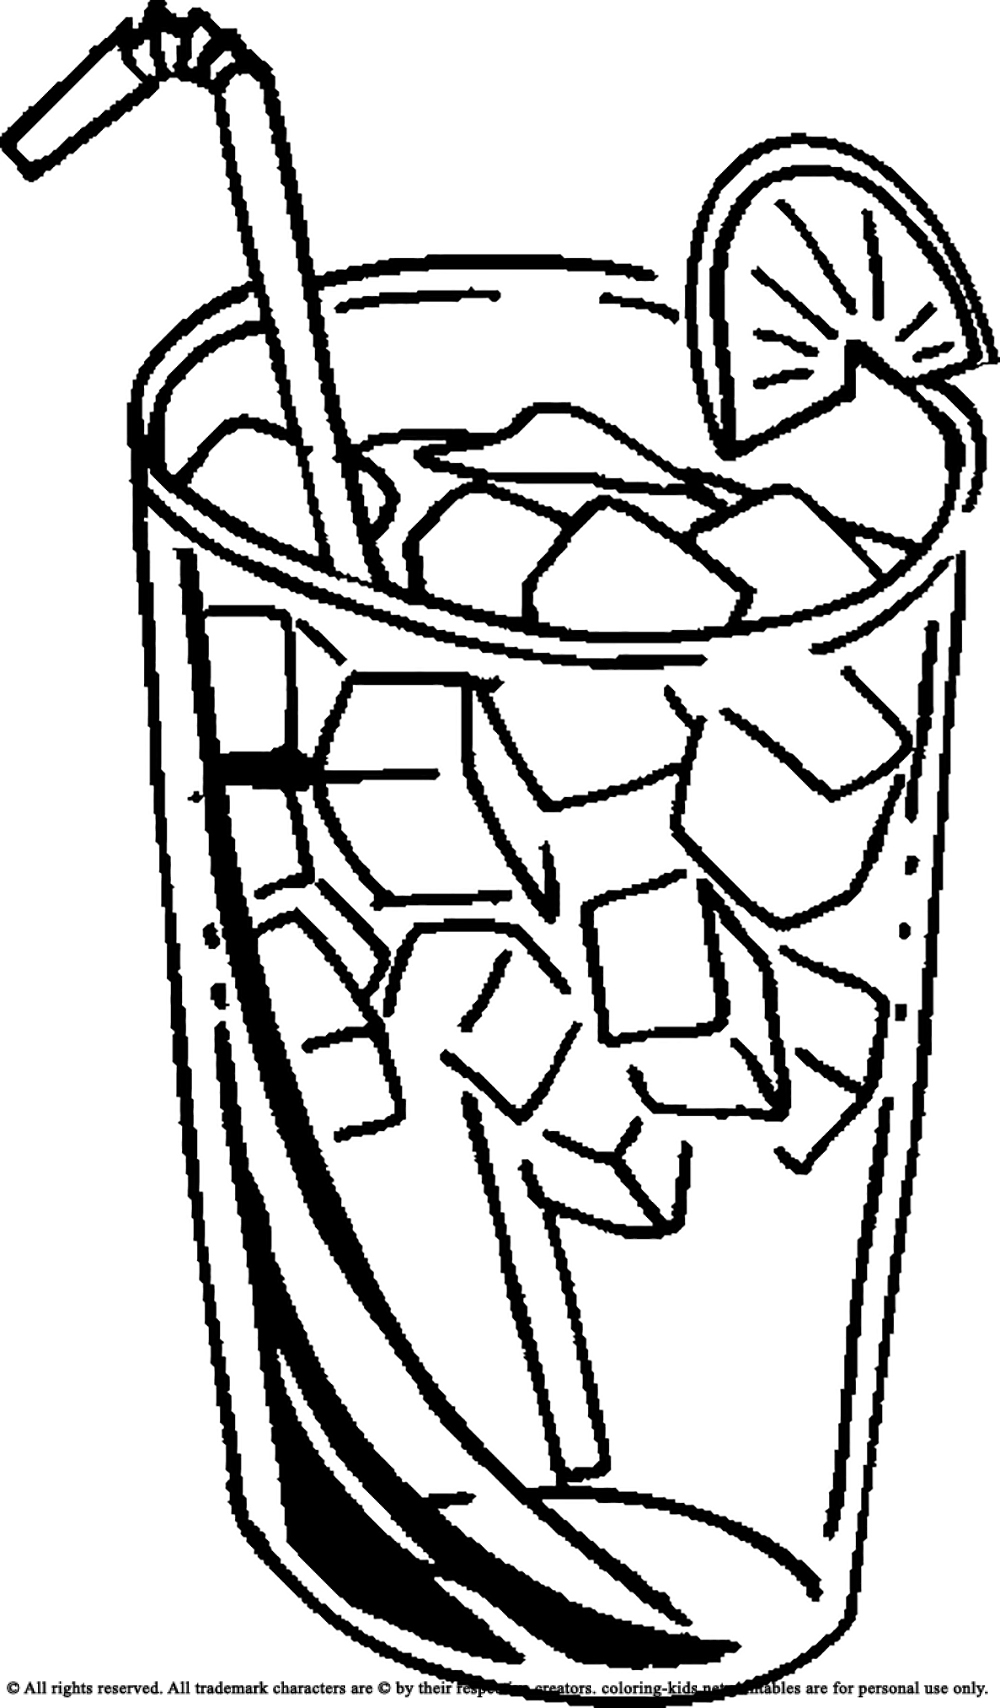 Juice clipart black and white Juice Cold Pages Drinking Drinks